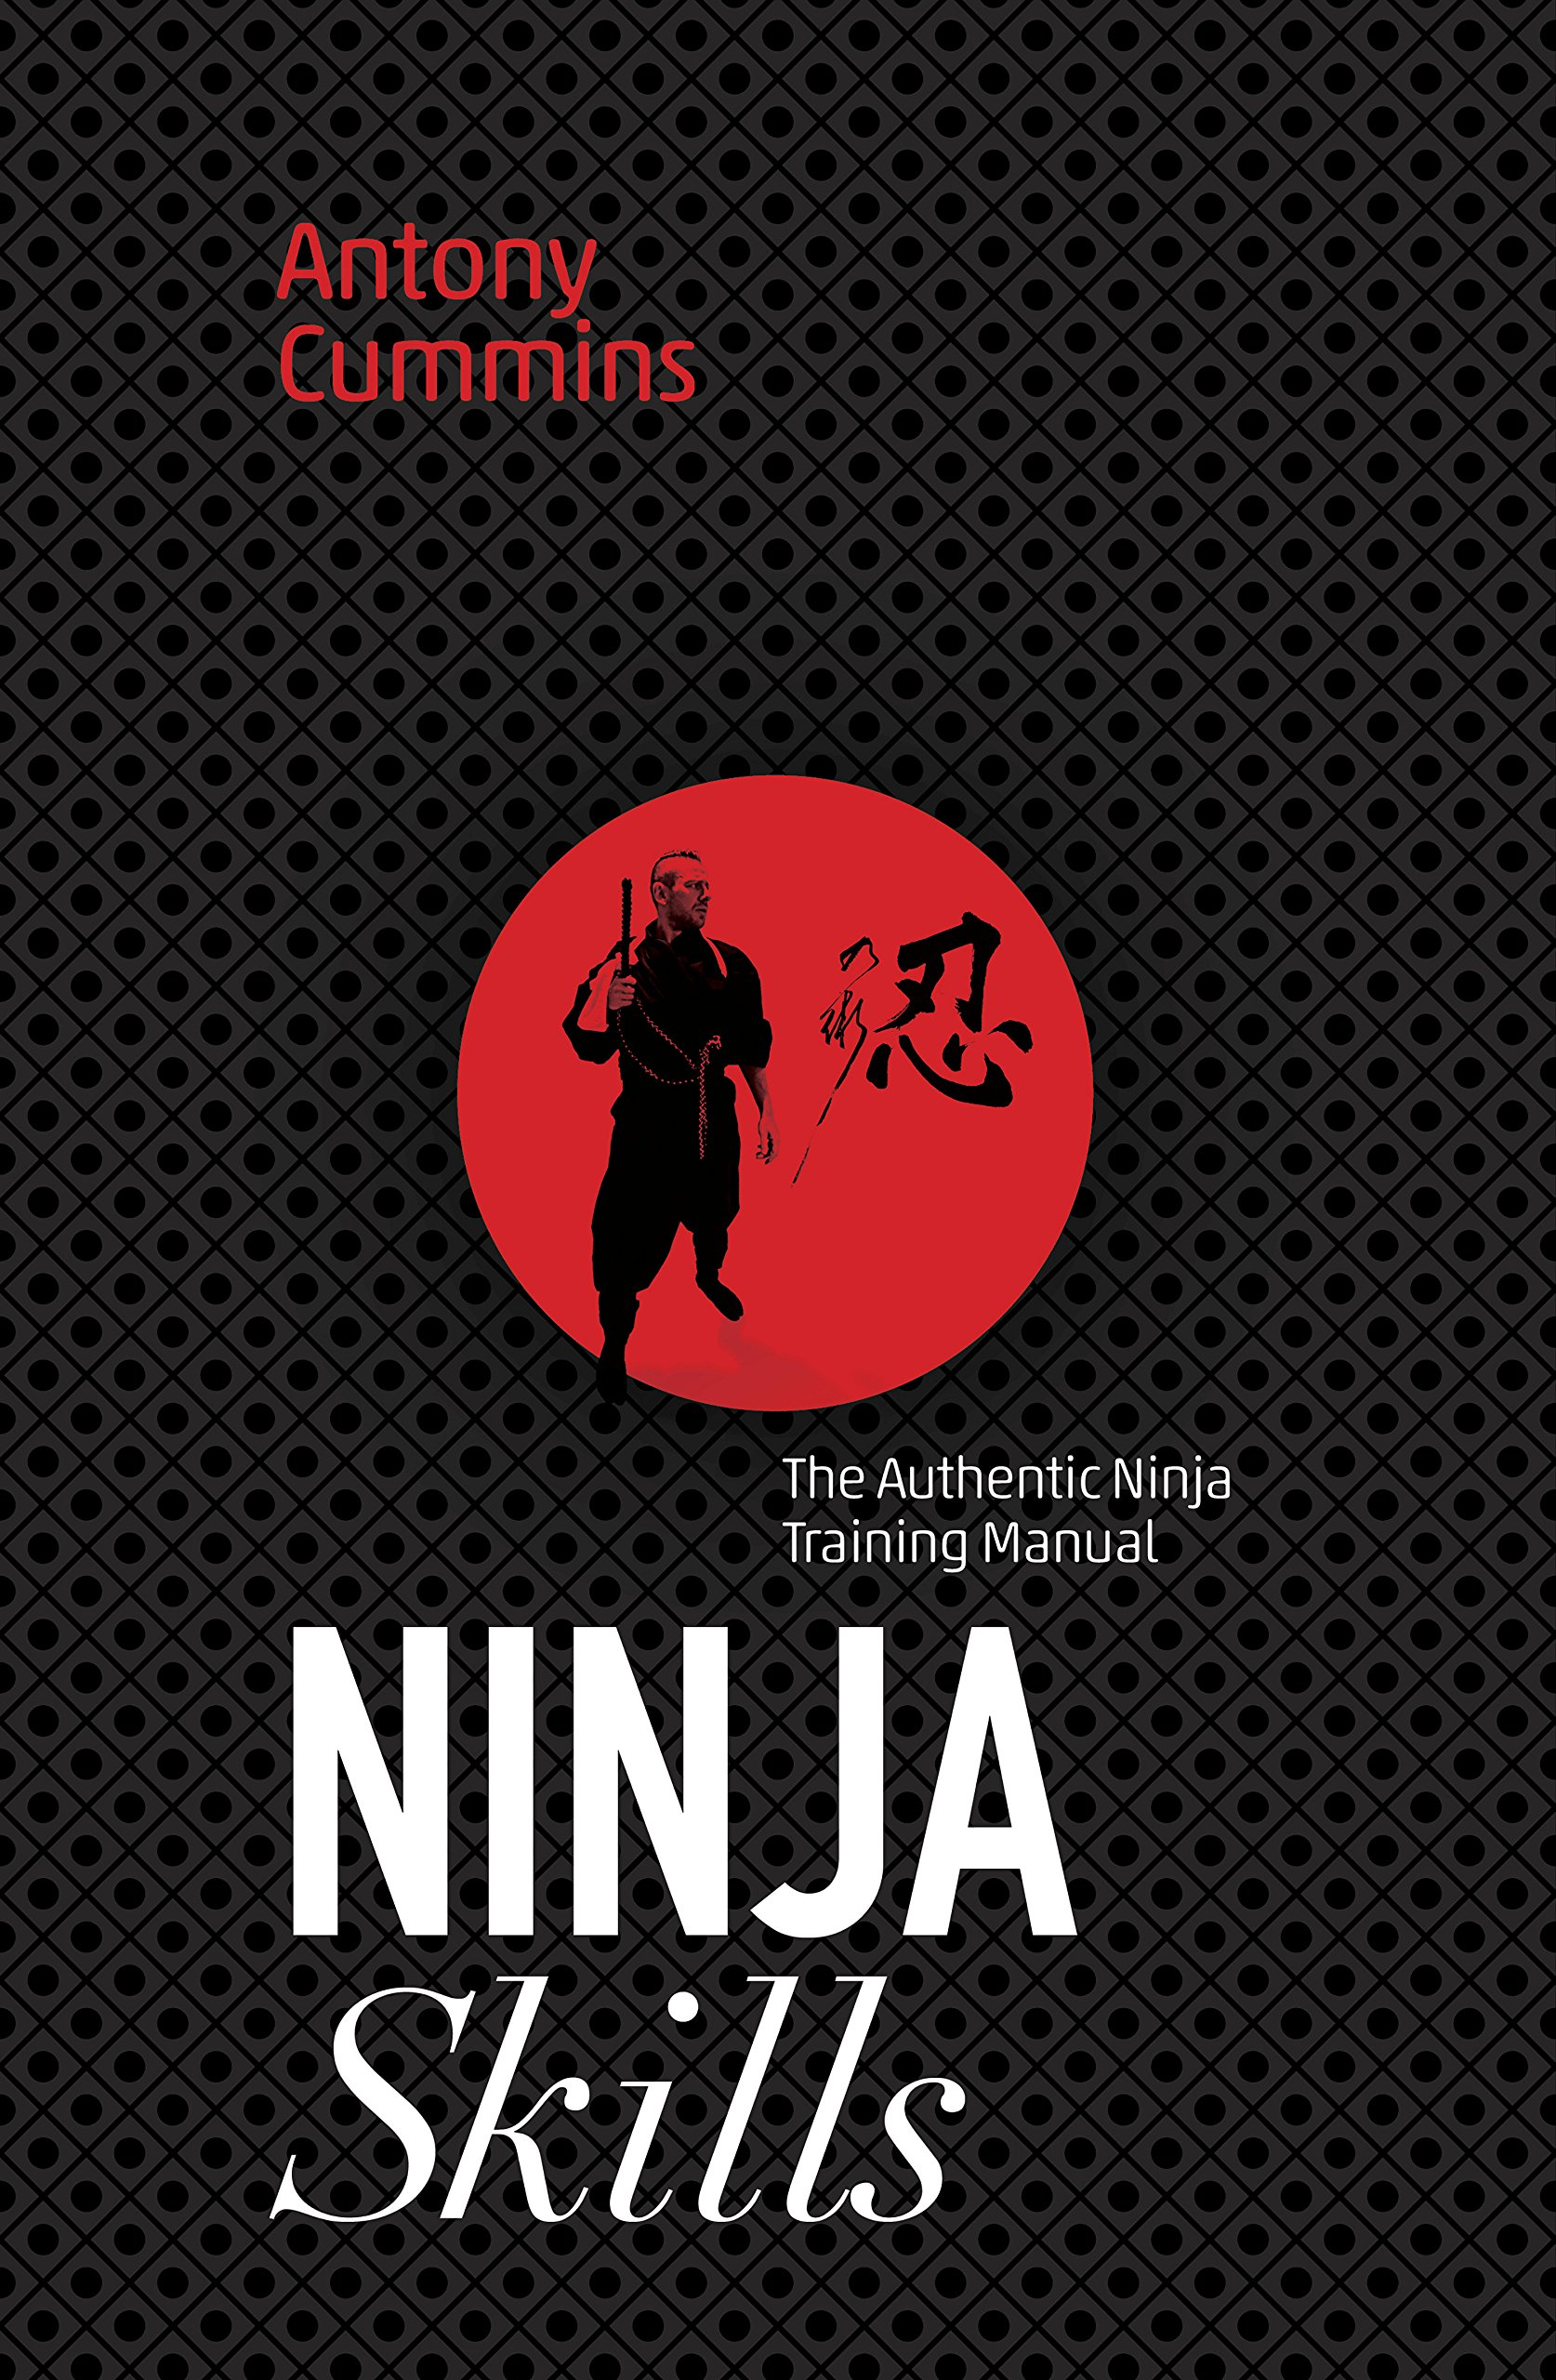 Ninja Skills: The Authentic Ninja Training Manual: Antony Cummins:  9781786780621: Amazon.com: Books